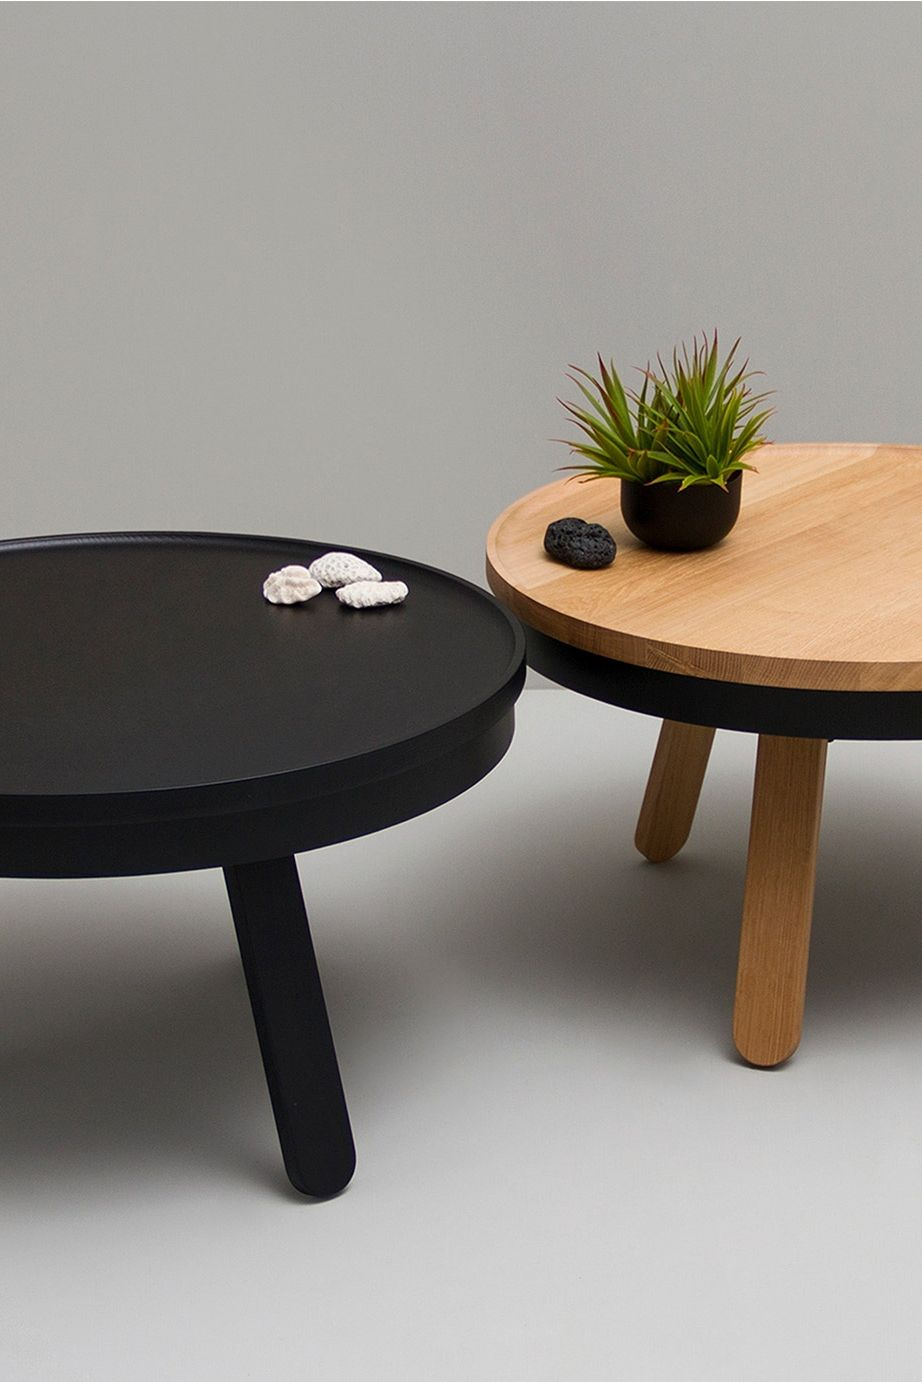 Center Table That Mix And Match Table Coffee Table Wood Coffee Table Furniture [ 1382 x 922 Pixel ]